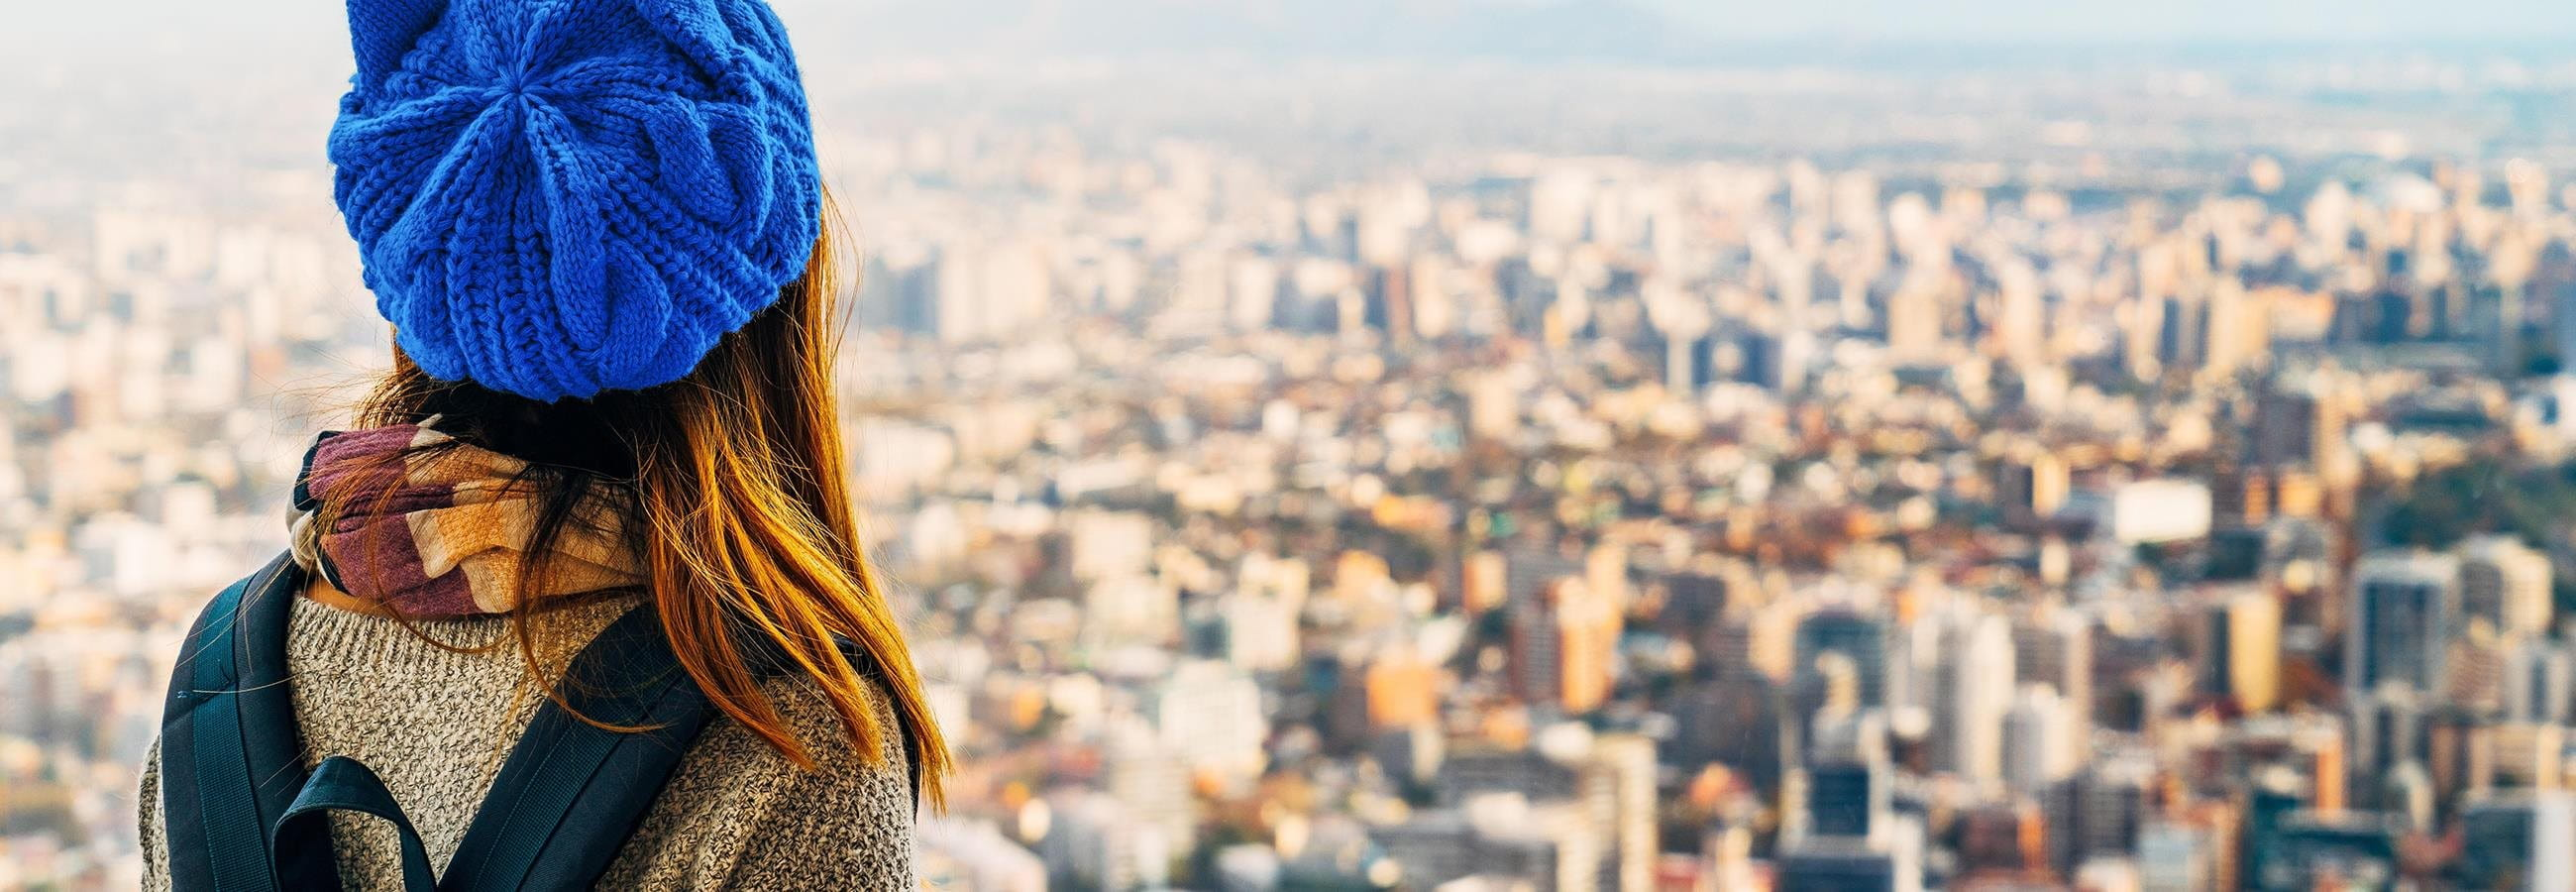 Woman looking over a city